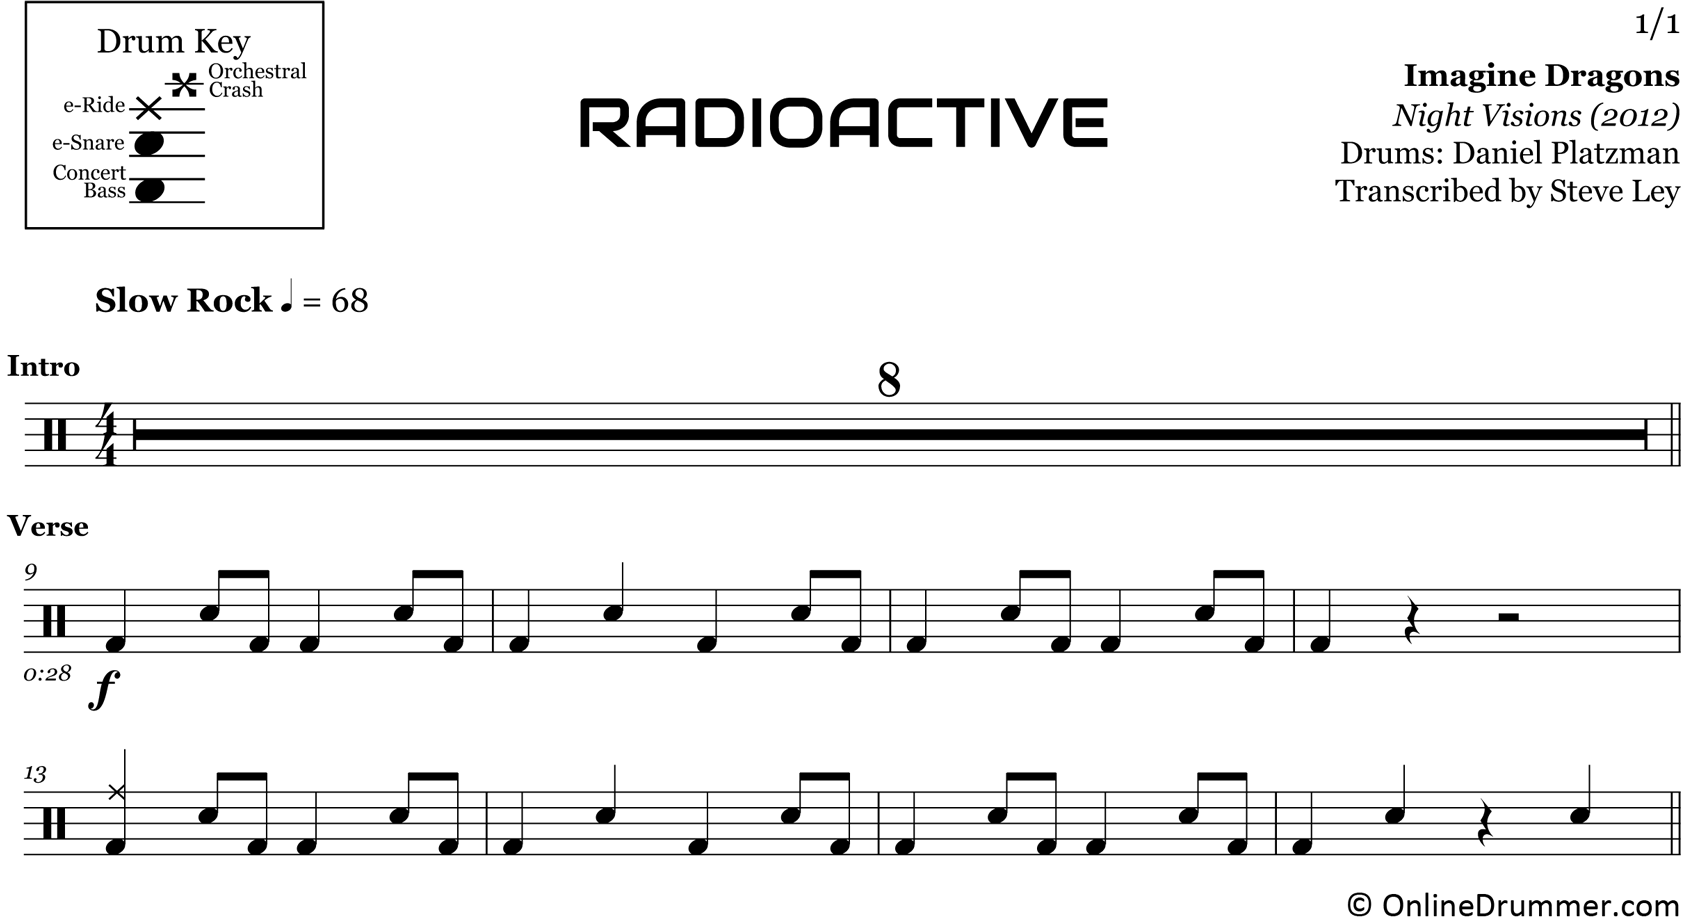 Radioactive - Imagine Dragons - Drum Sheet Music